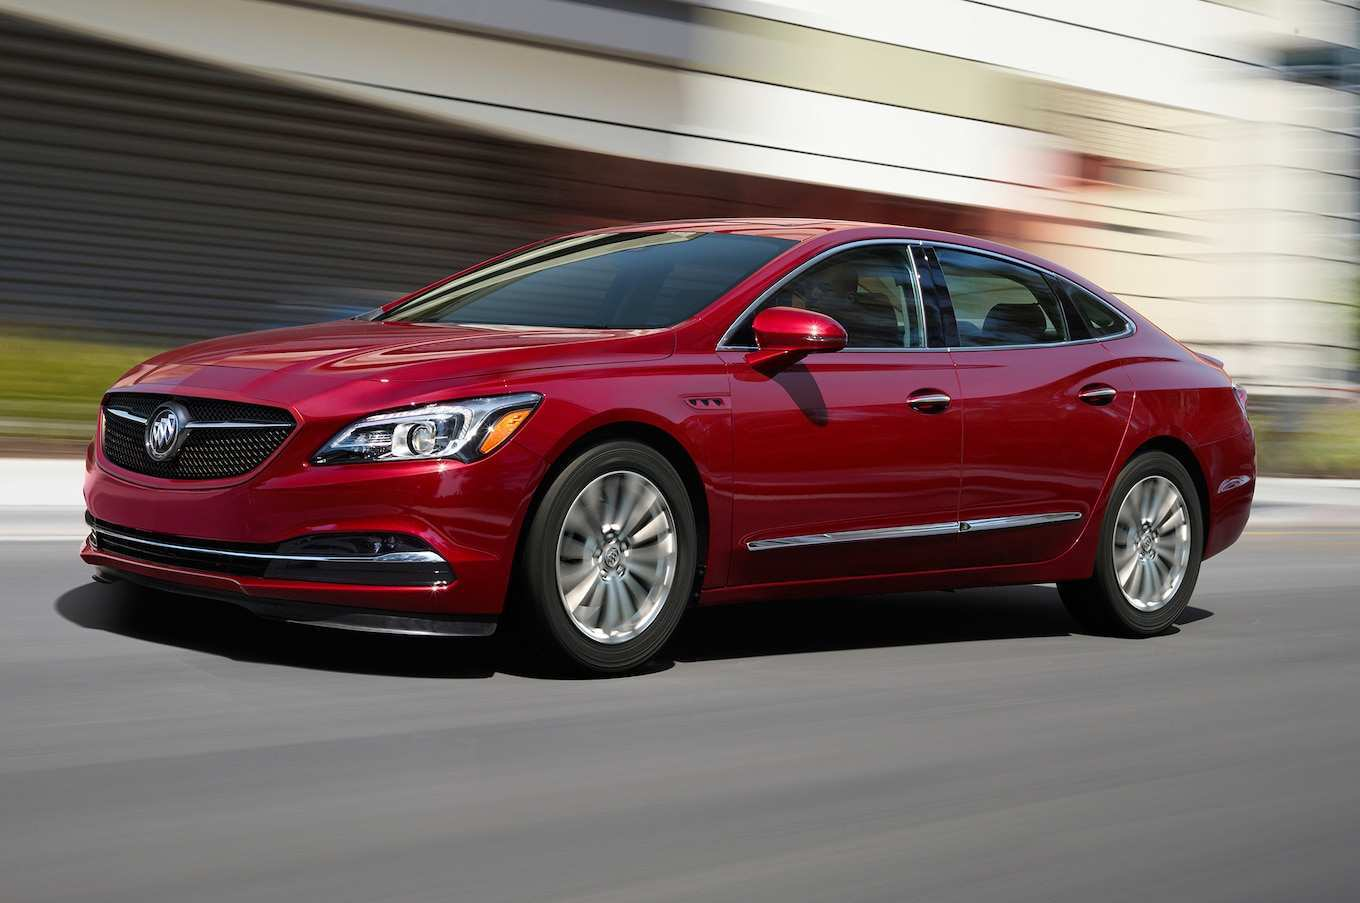 27 All New 2019 Buick Cars Images by 2019 Buick Cars